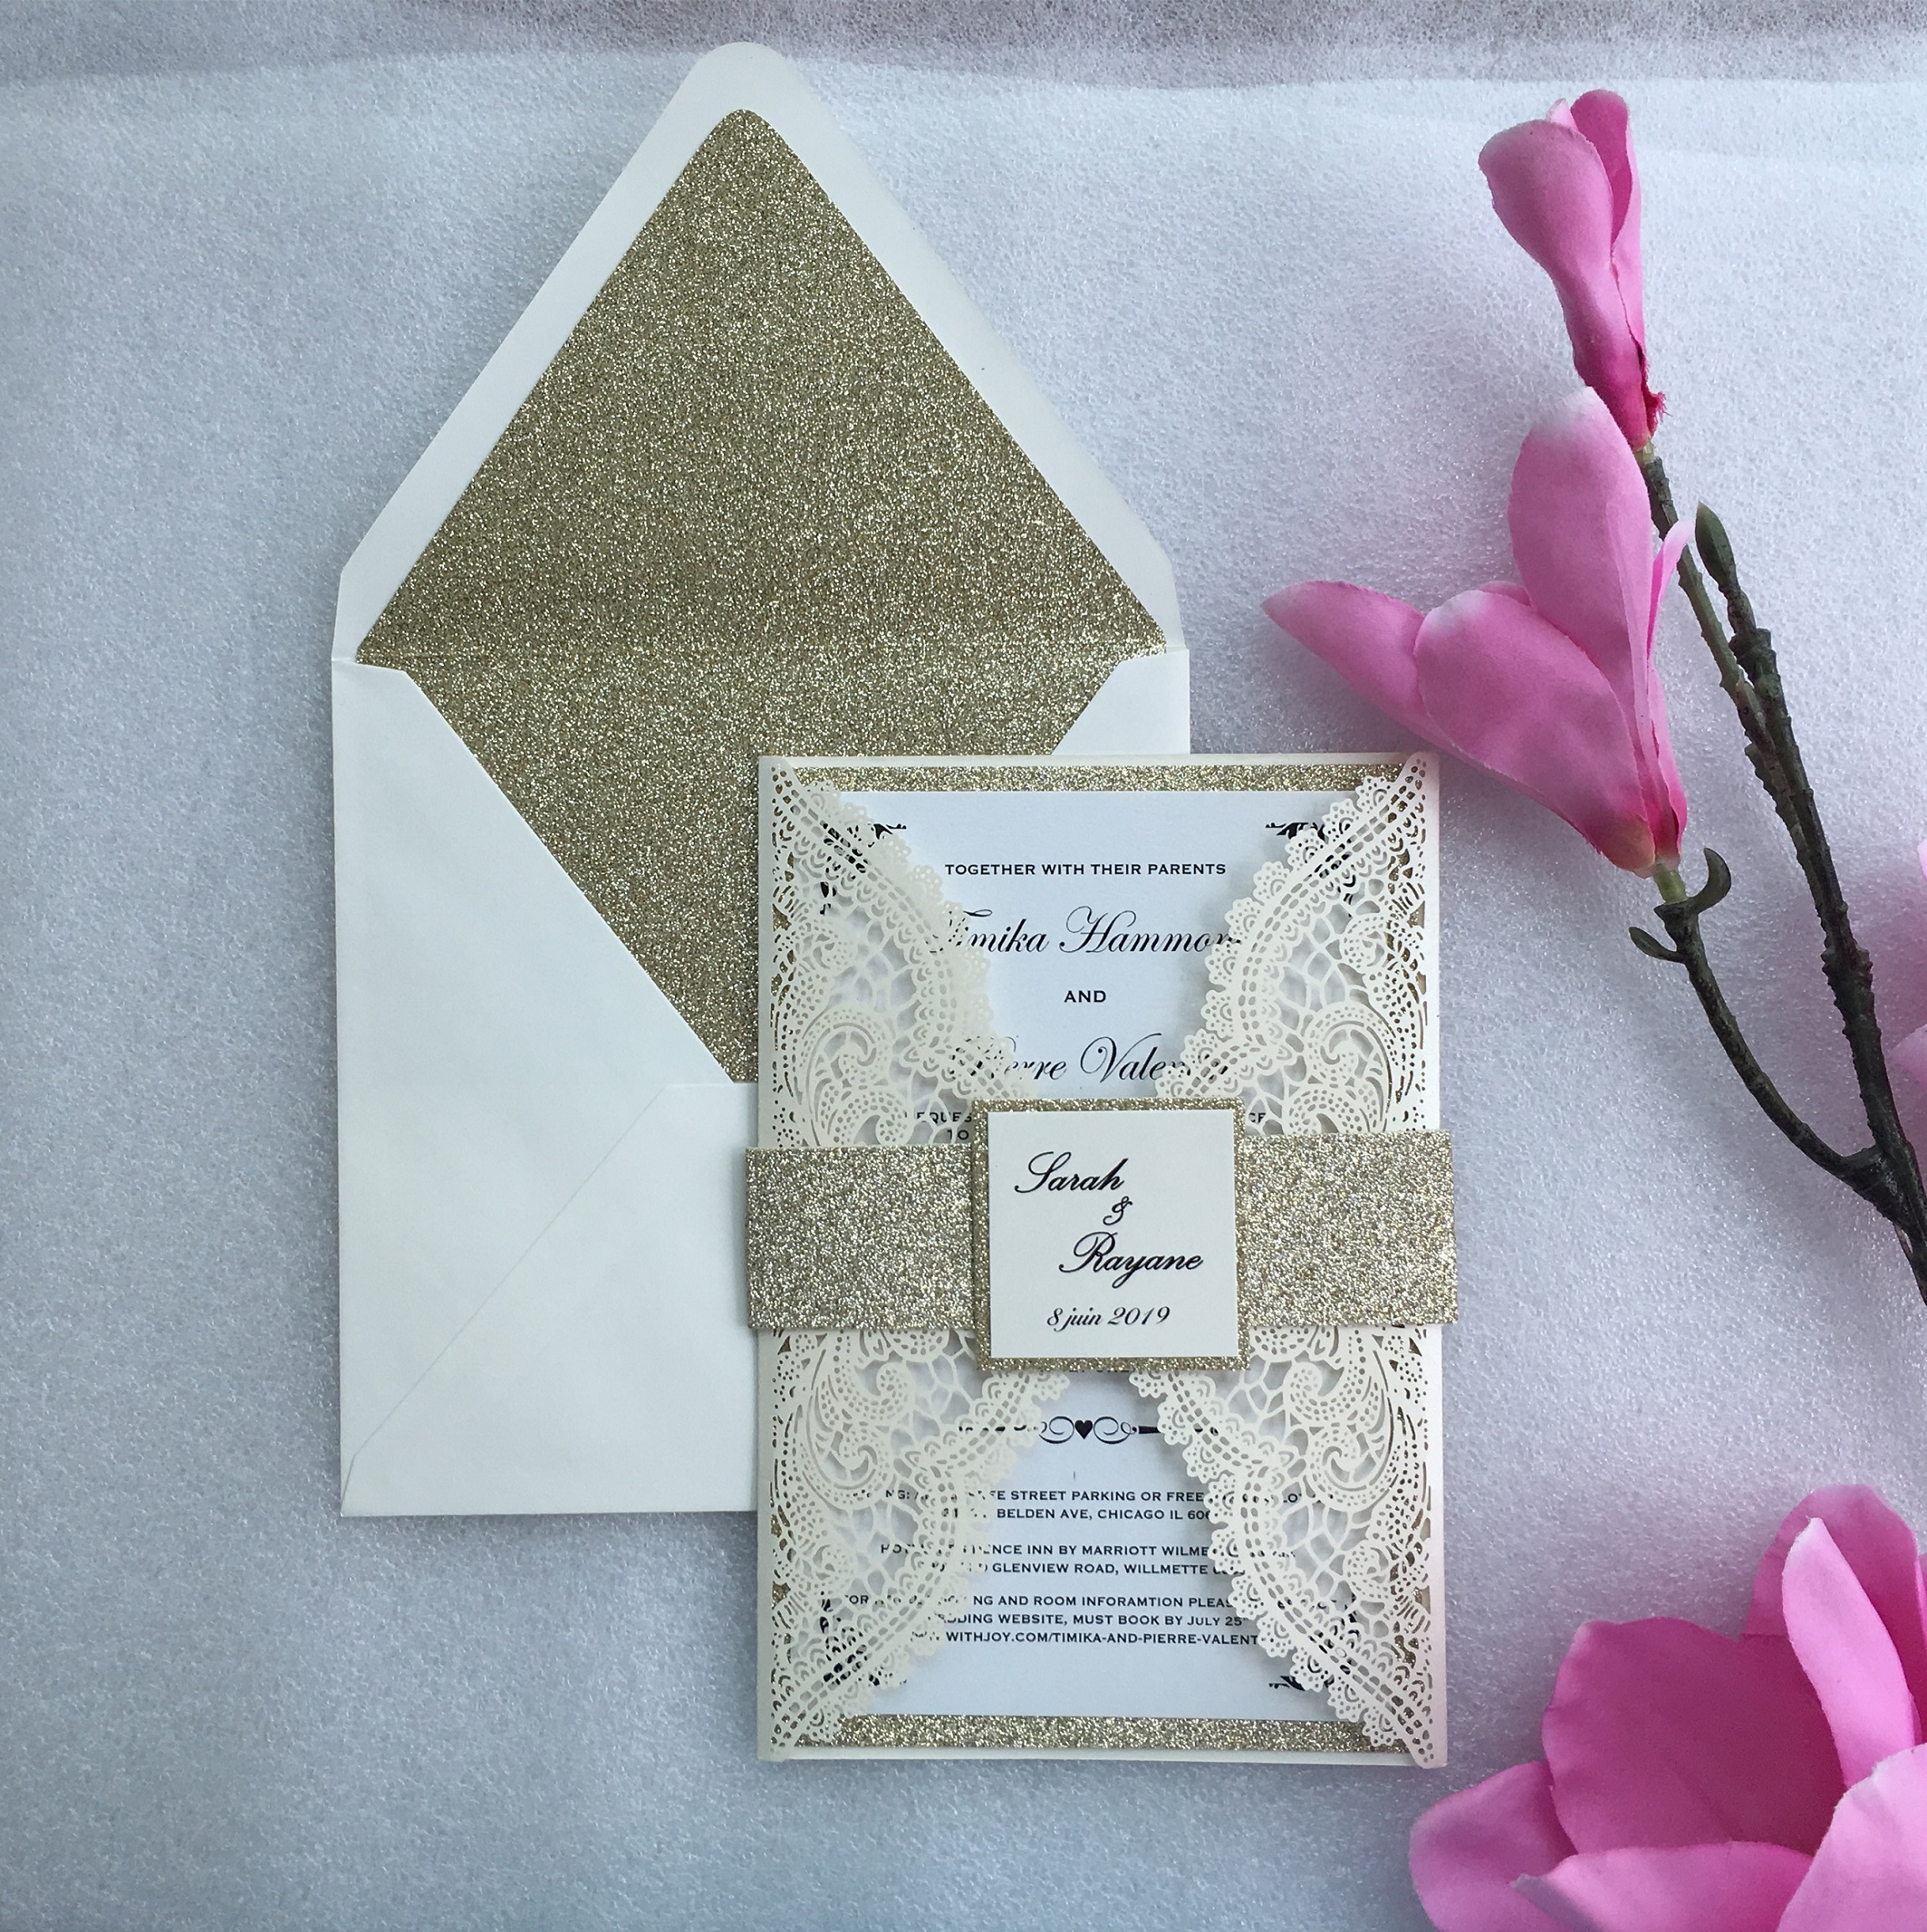 Us 51 88 34 Off Customized Ivory Laser Cut Wedding Party Invitations Card Elegant Marriage Invitation Cards With Band 100pcs Express Shipping In